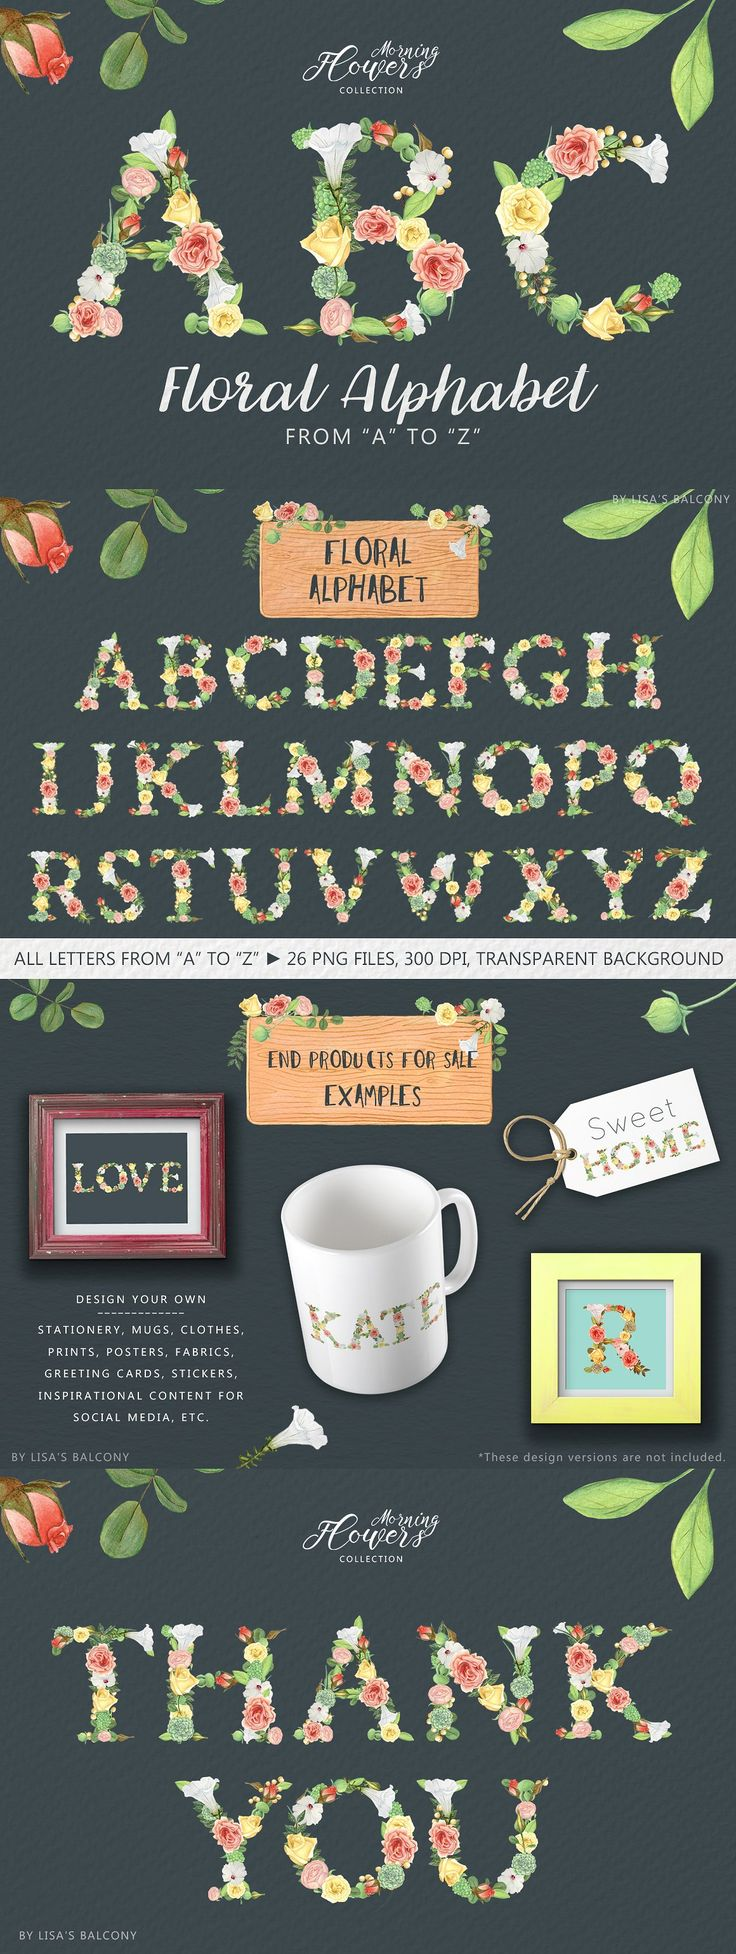 Affiliate | Floral Alphabet – Morning Flowers. Elegant and romantic floral letters that you can use to create beautiful projects. Put some words together and design lovely greeting cards, wedding stationery, prints, web images (content for your social media and blog), book covers, mugs, t-shirts, etc.